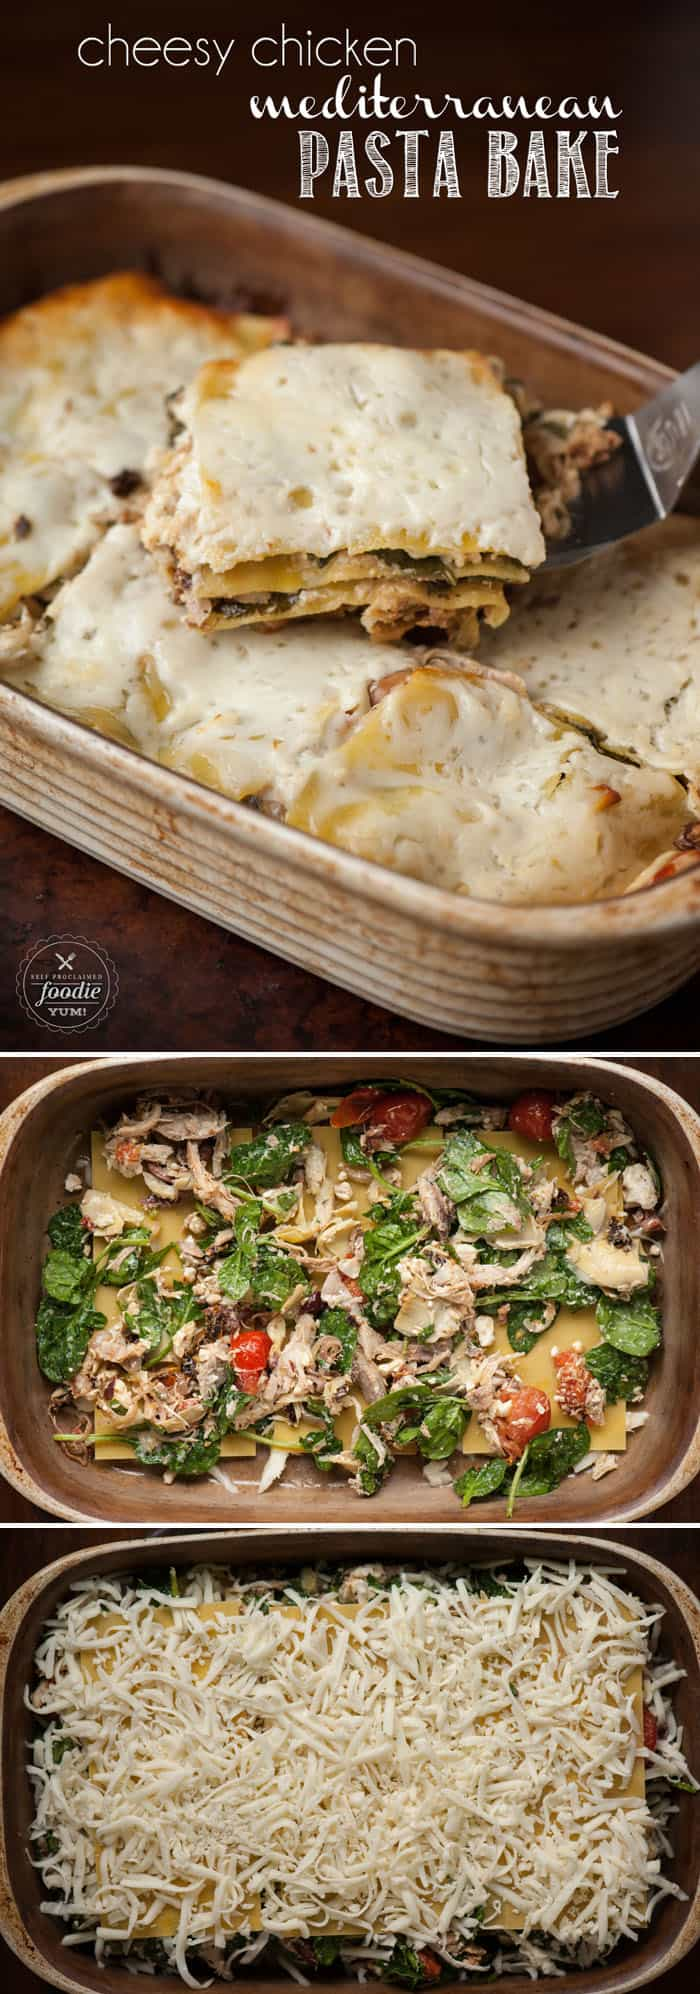 Cheesy Chicken Mediterranean Pasta Bake is an easy to make flavorful one dish dinner full of tons of tasty ingredients that your entire family will love.